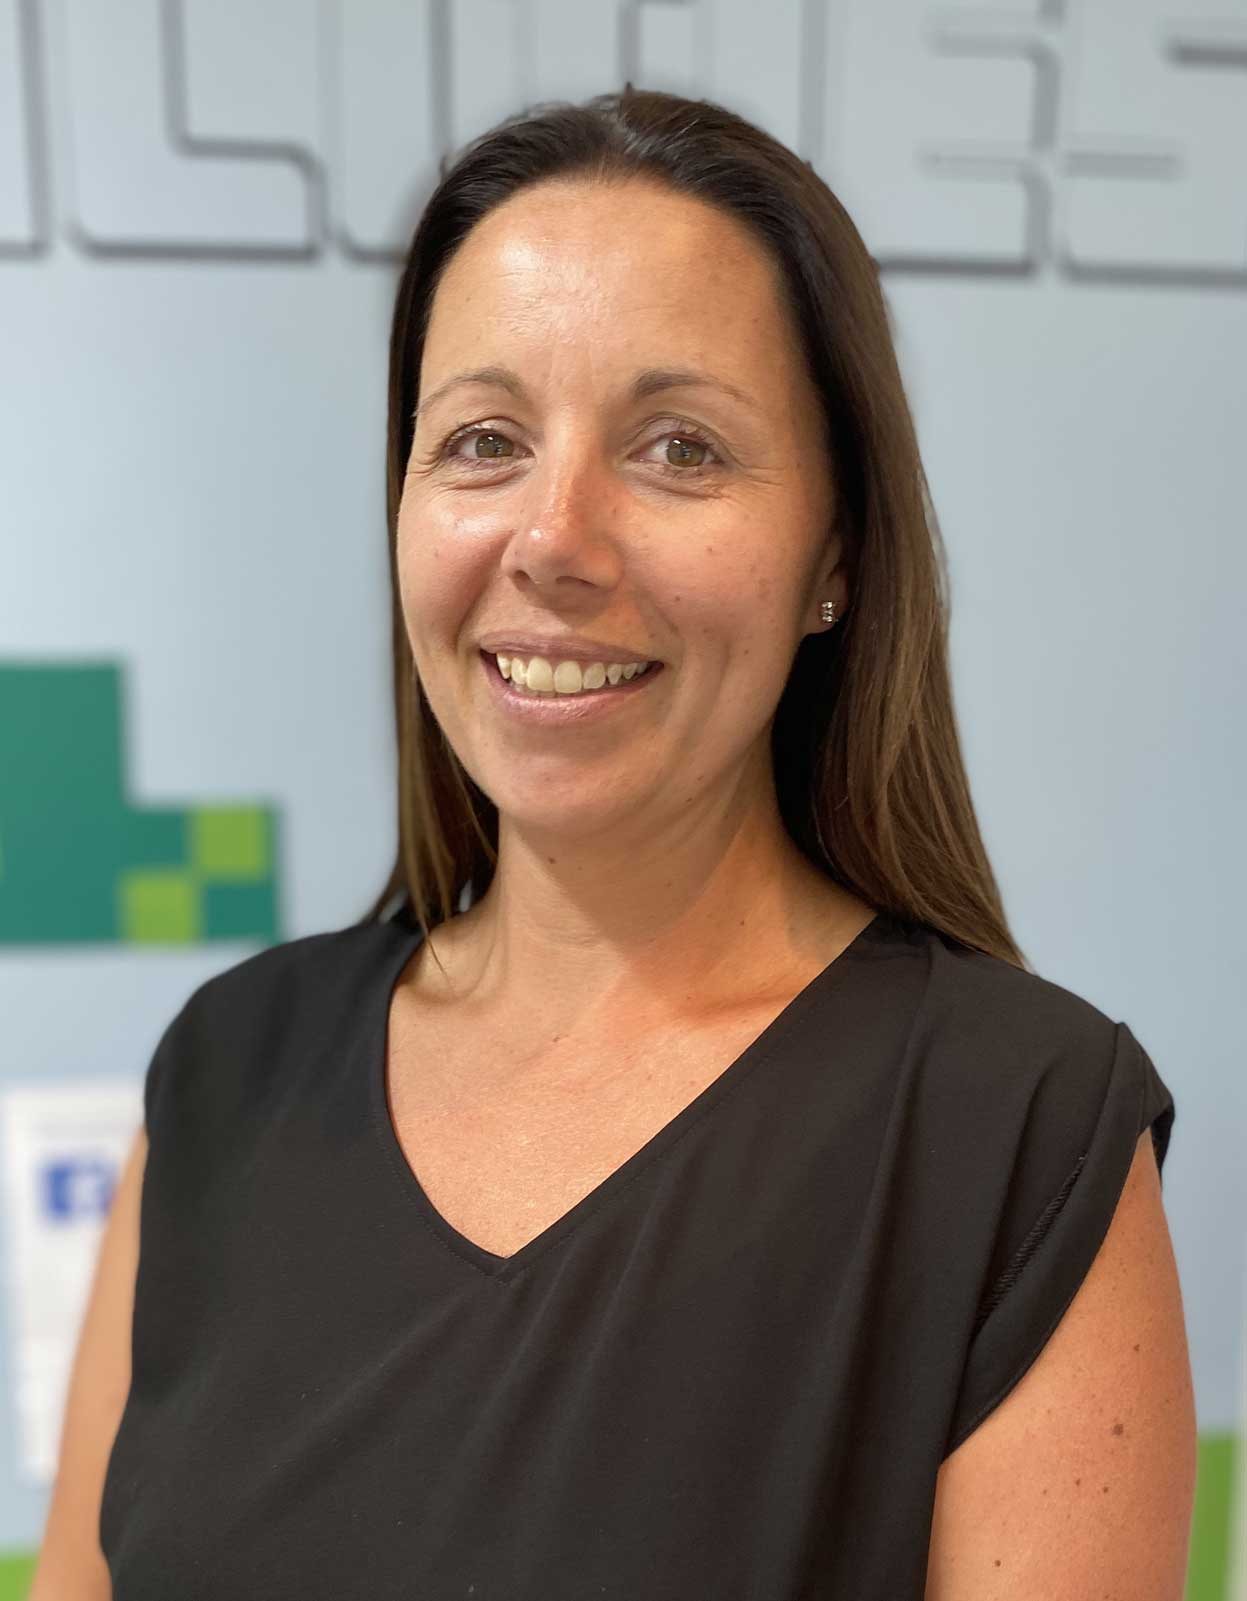 Ms Michelle Flaherty (Occupational Therapist